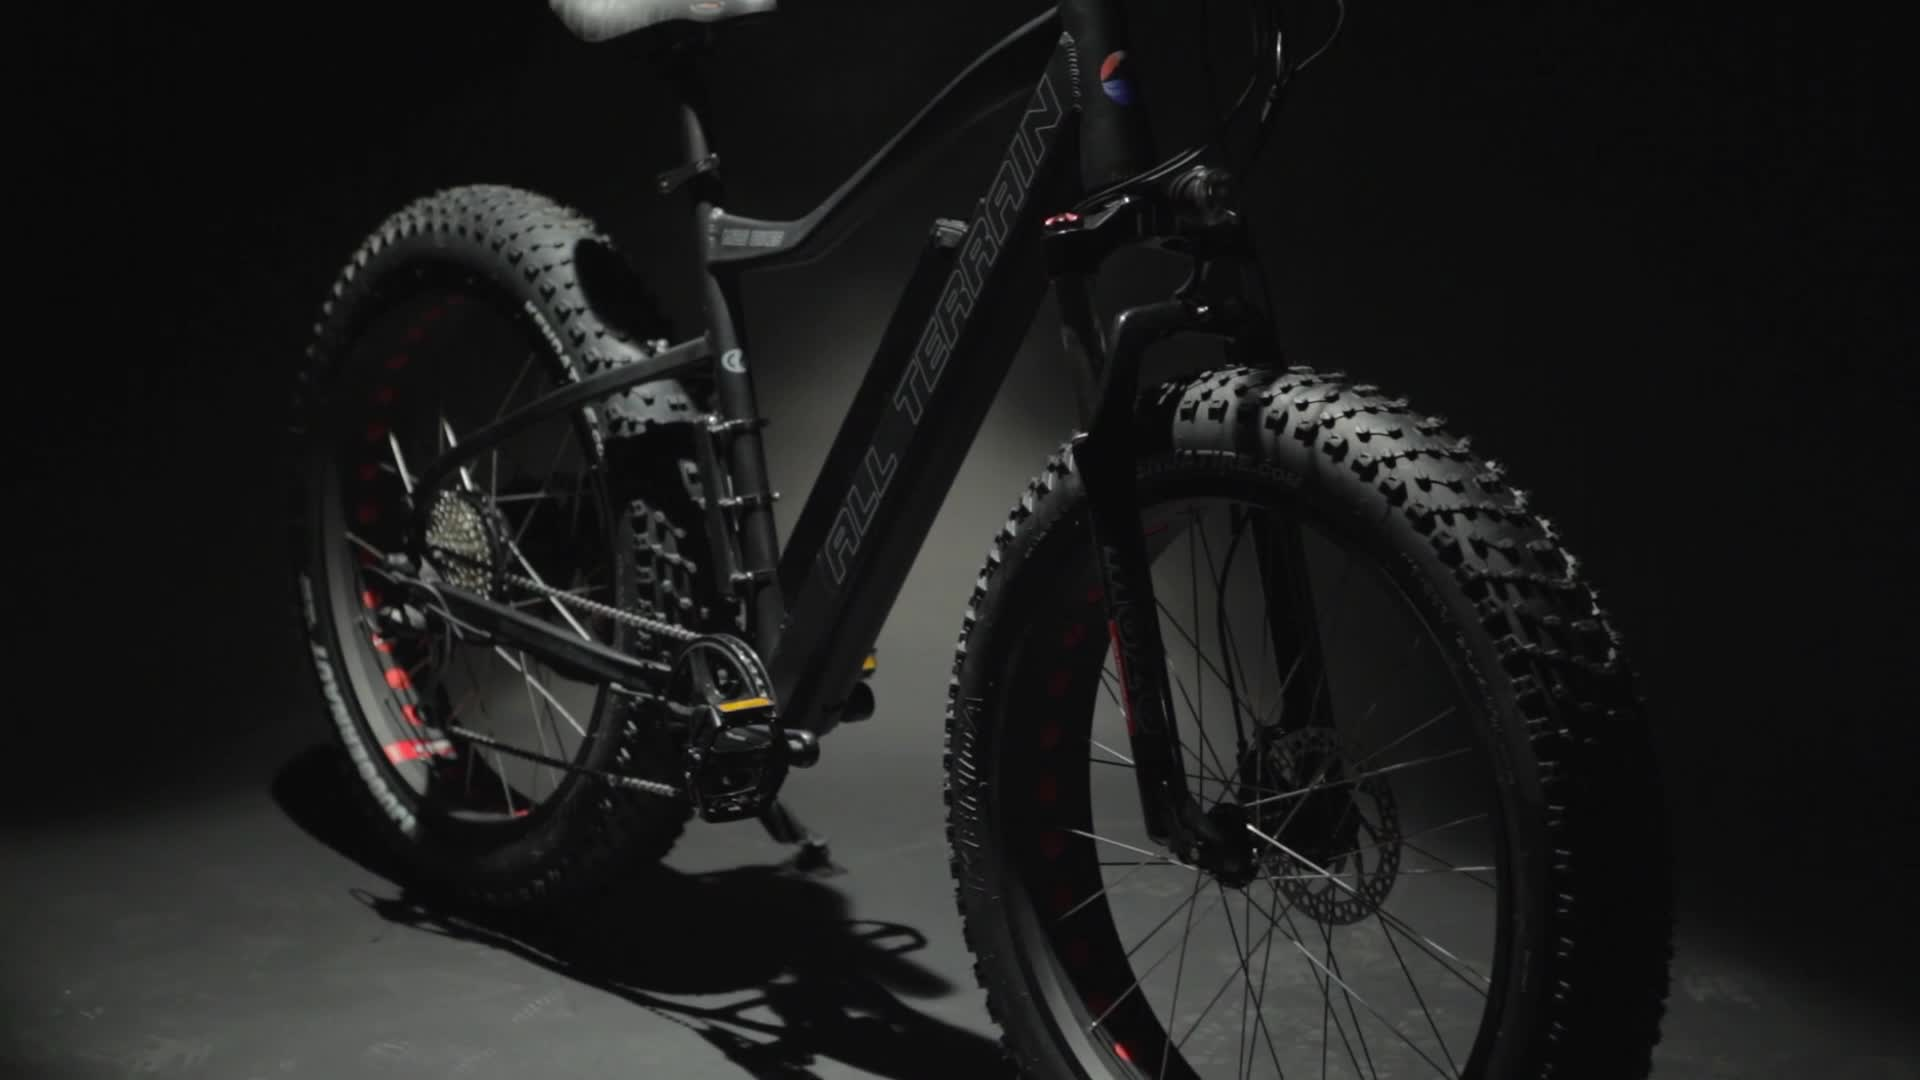 High configuration electric mountain bike with Bafang M600 Central motor